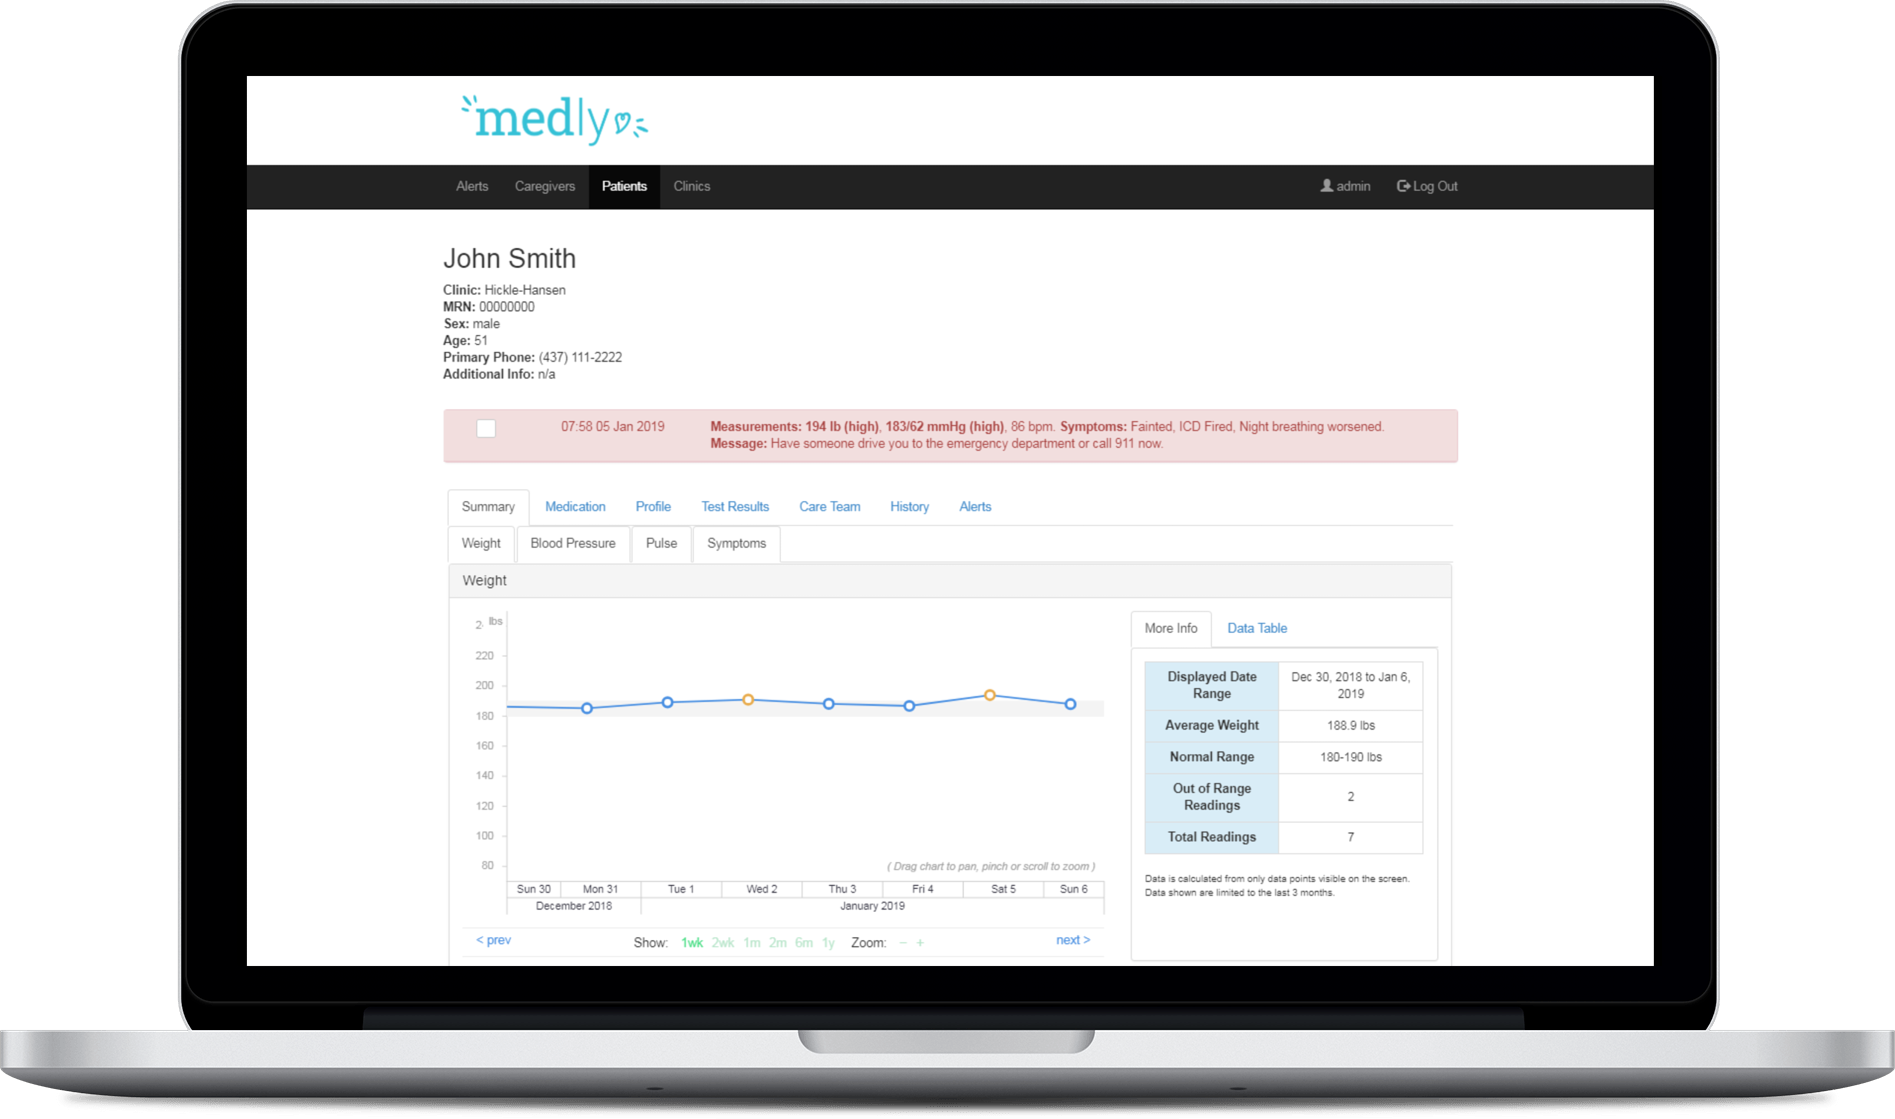 Medly Dashboard enables clinicians to assess a patient's health status and respond to alerts